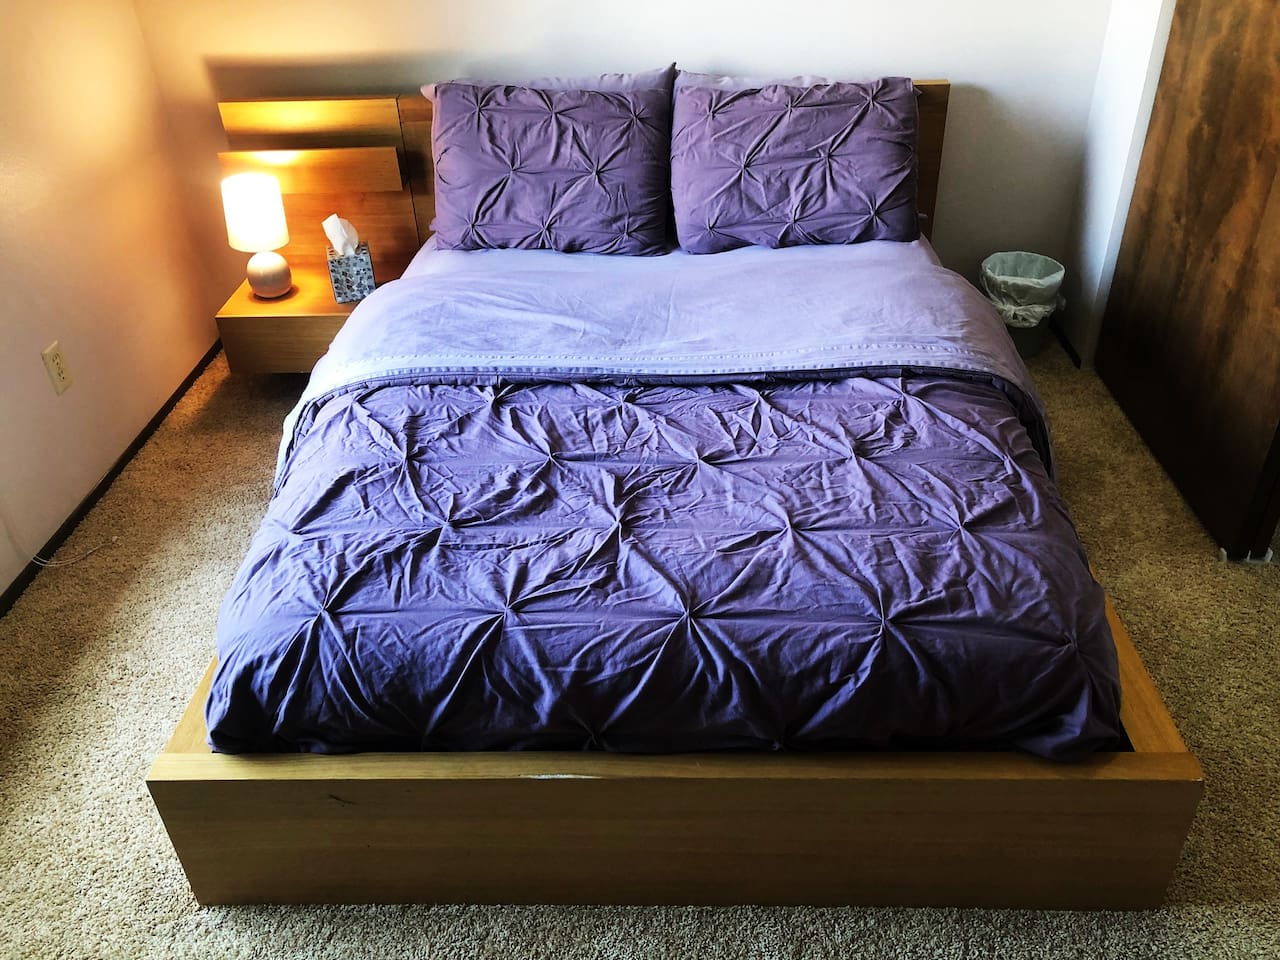 Double Bed, perfect for 1 or perfect cozy for 2!